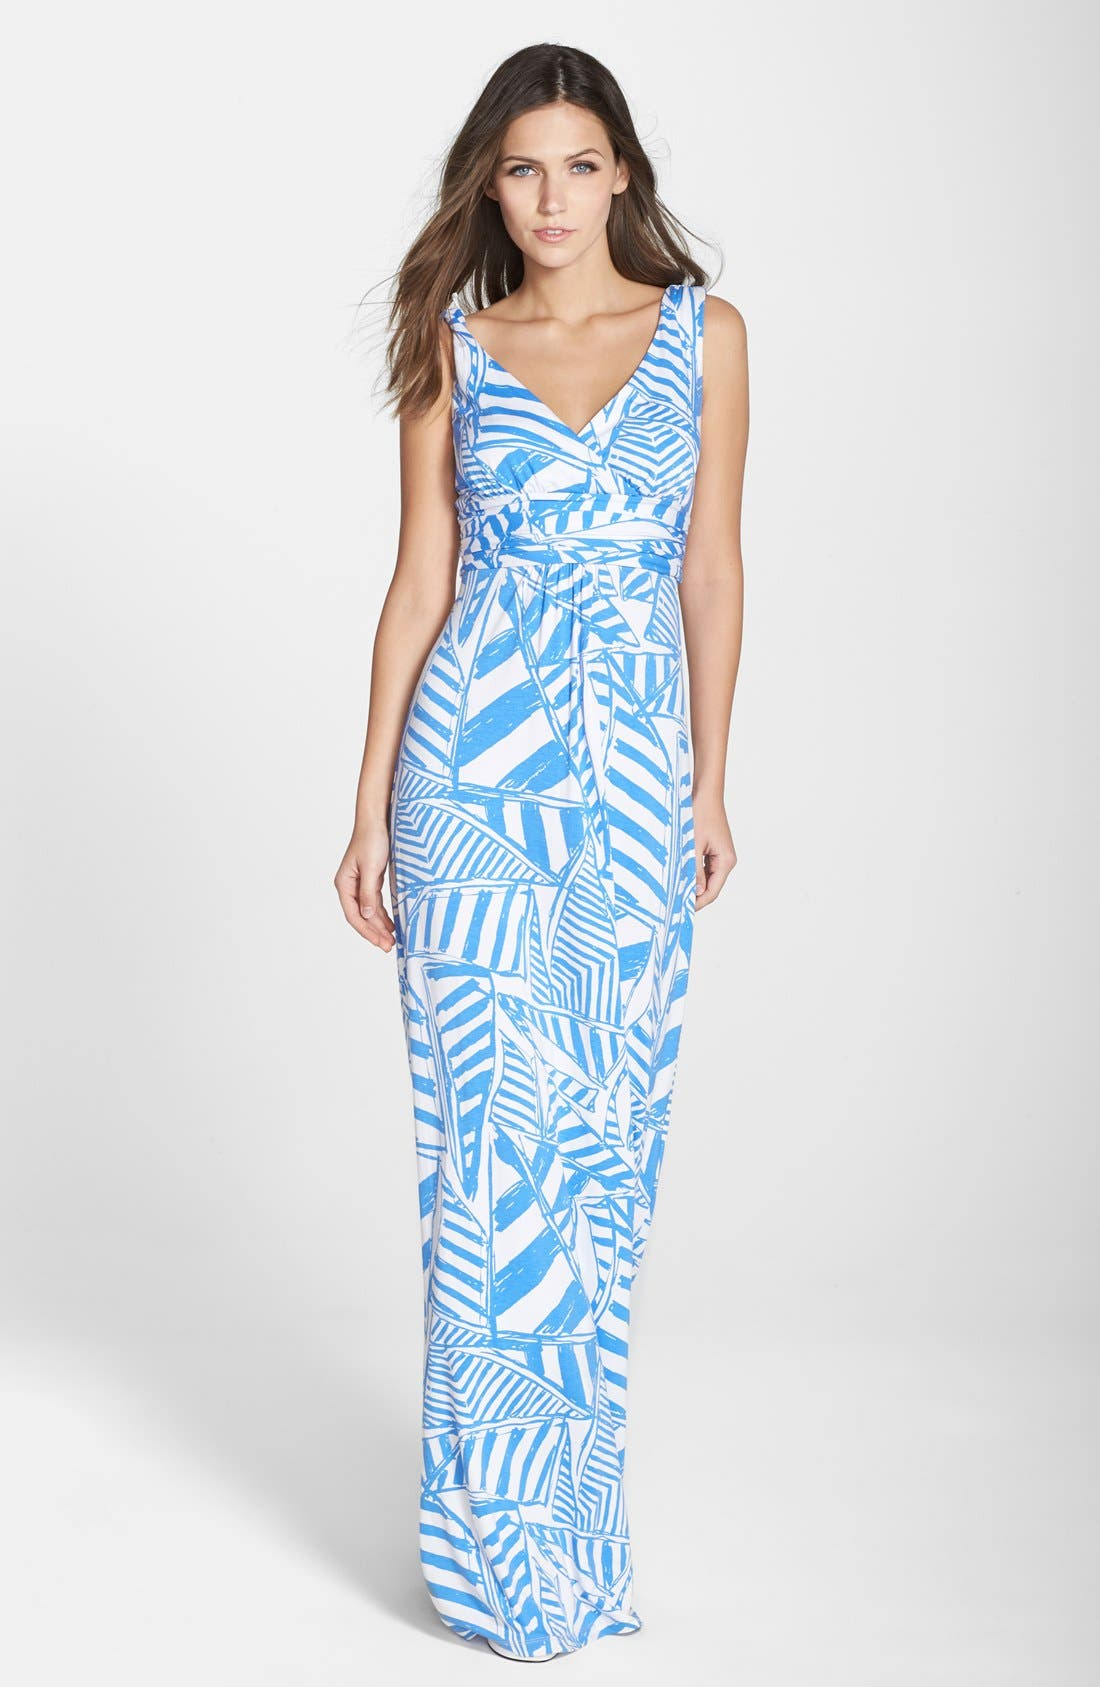 Lilly Pulitzer Sloane Print Jersey Maxi Dress Nordstrom